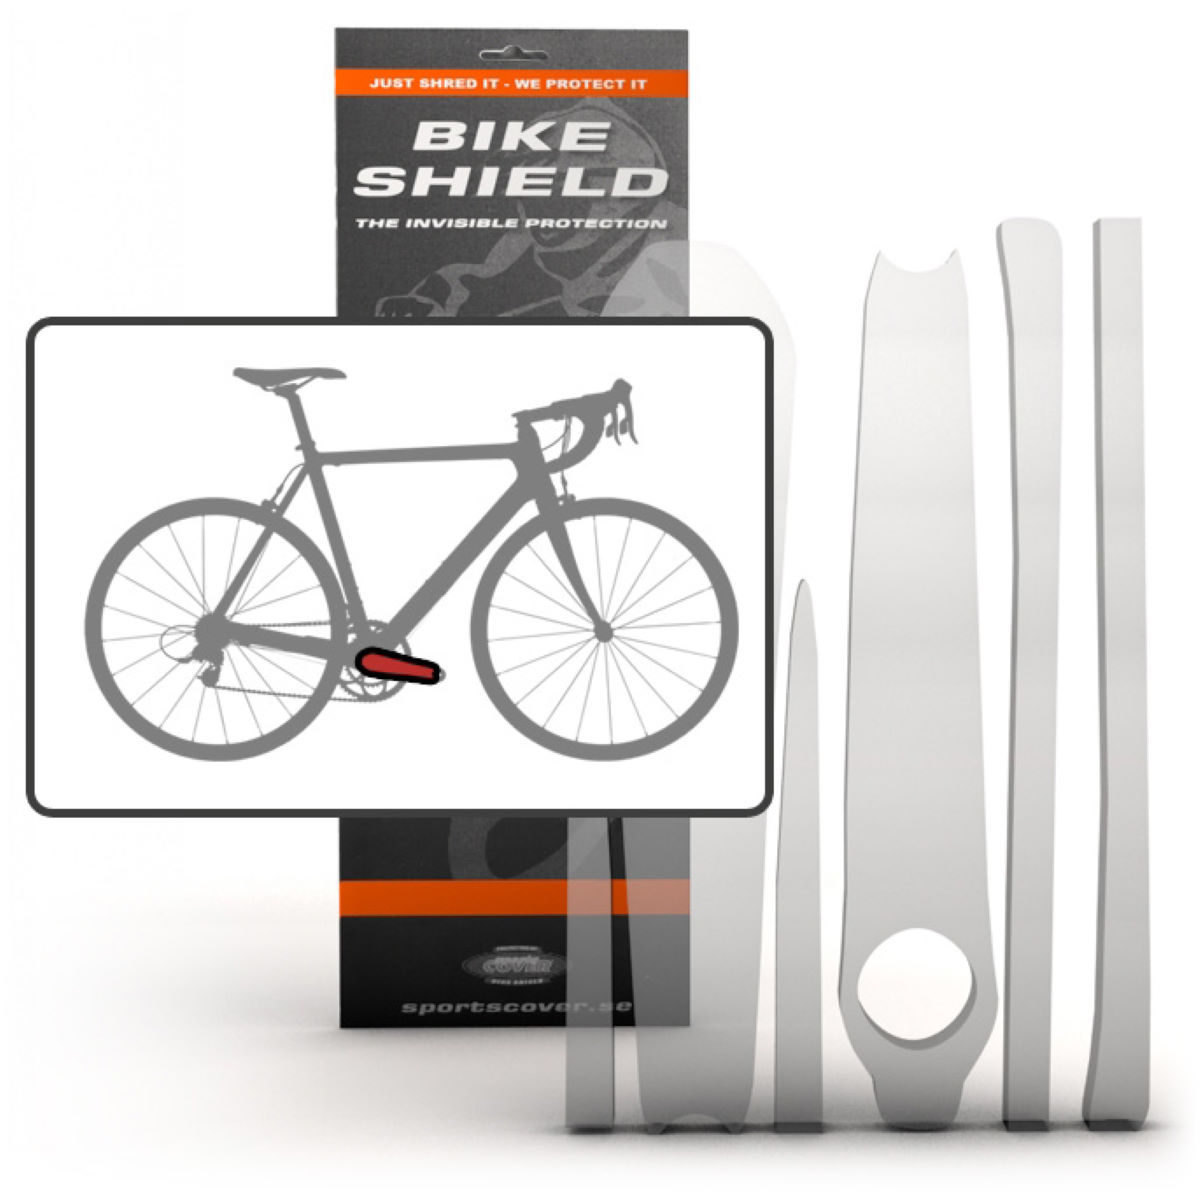 Bike Shield Crankshield Pack - Protectores de cuadro